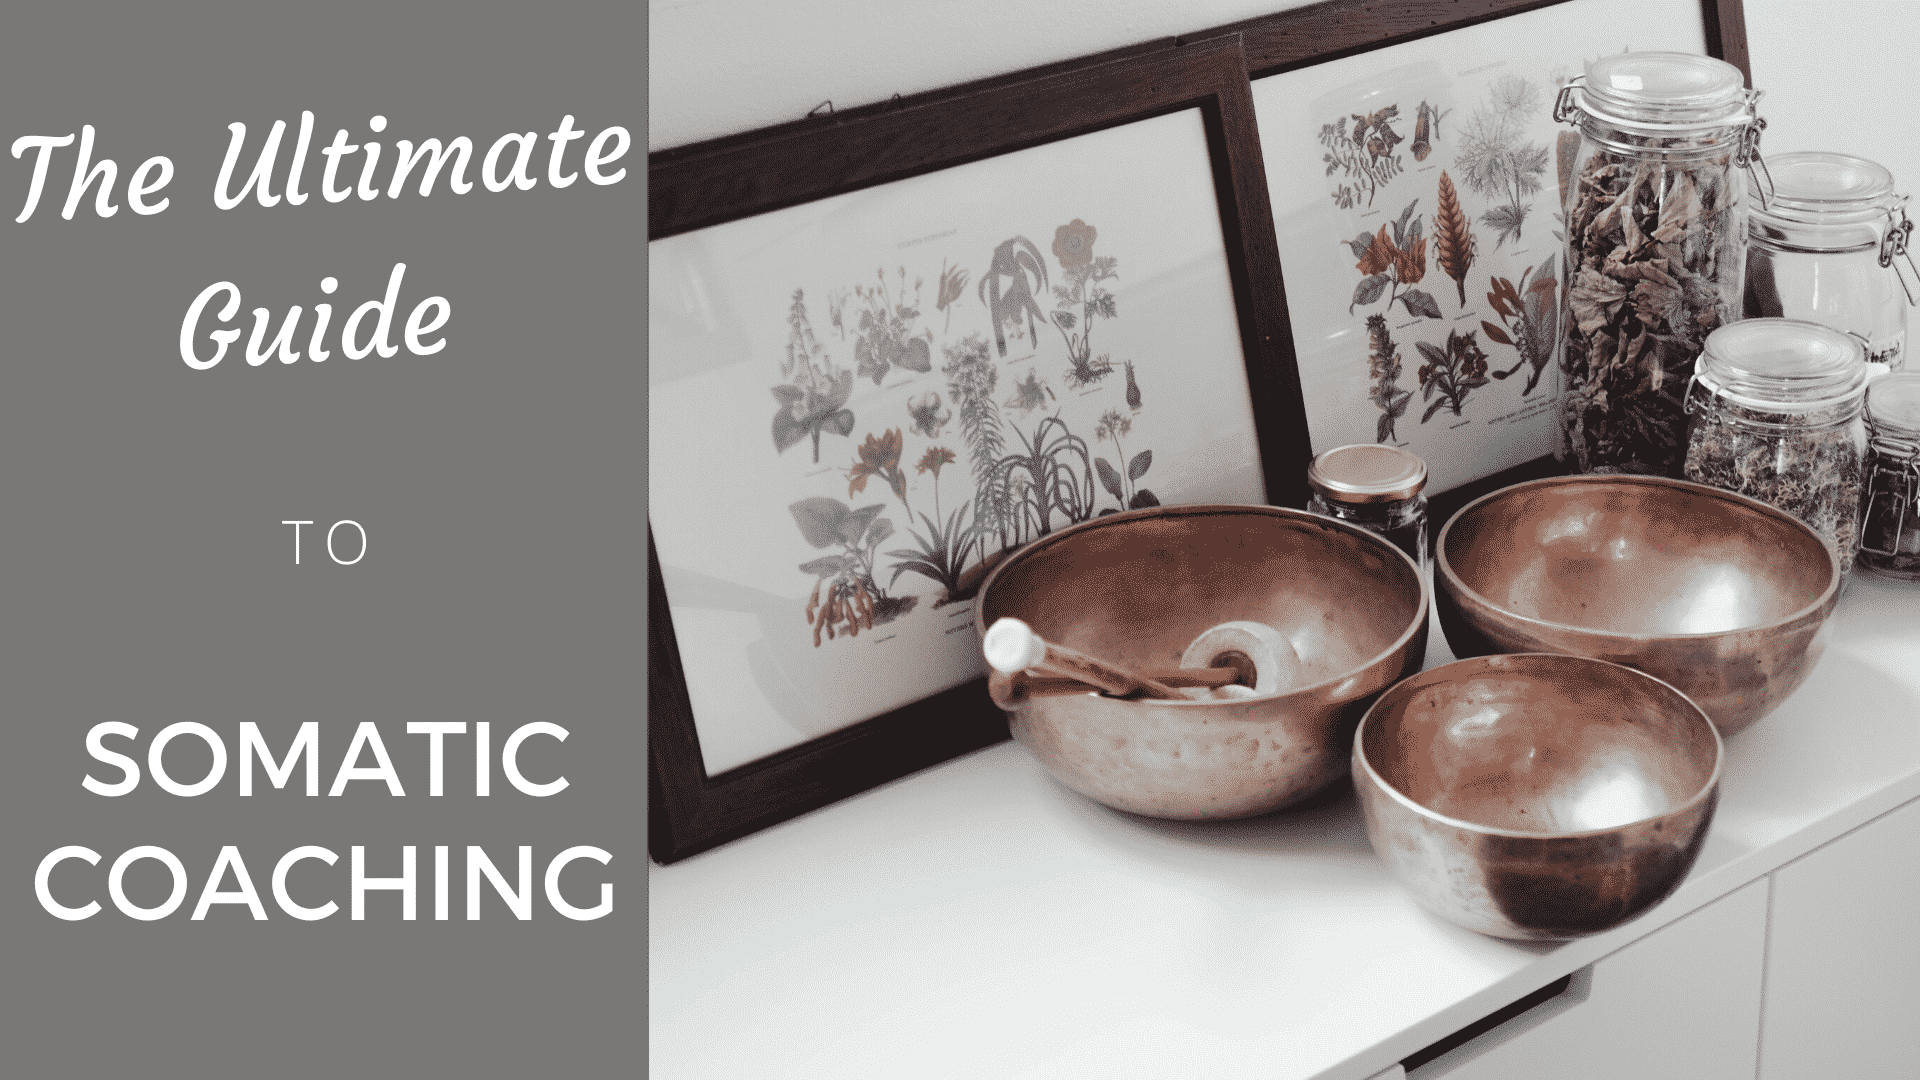 The Ultimate Guide to Somatic Coaching (2020)